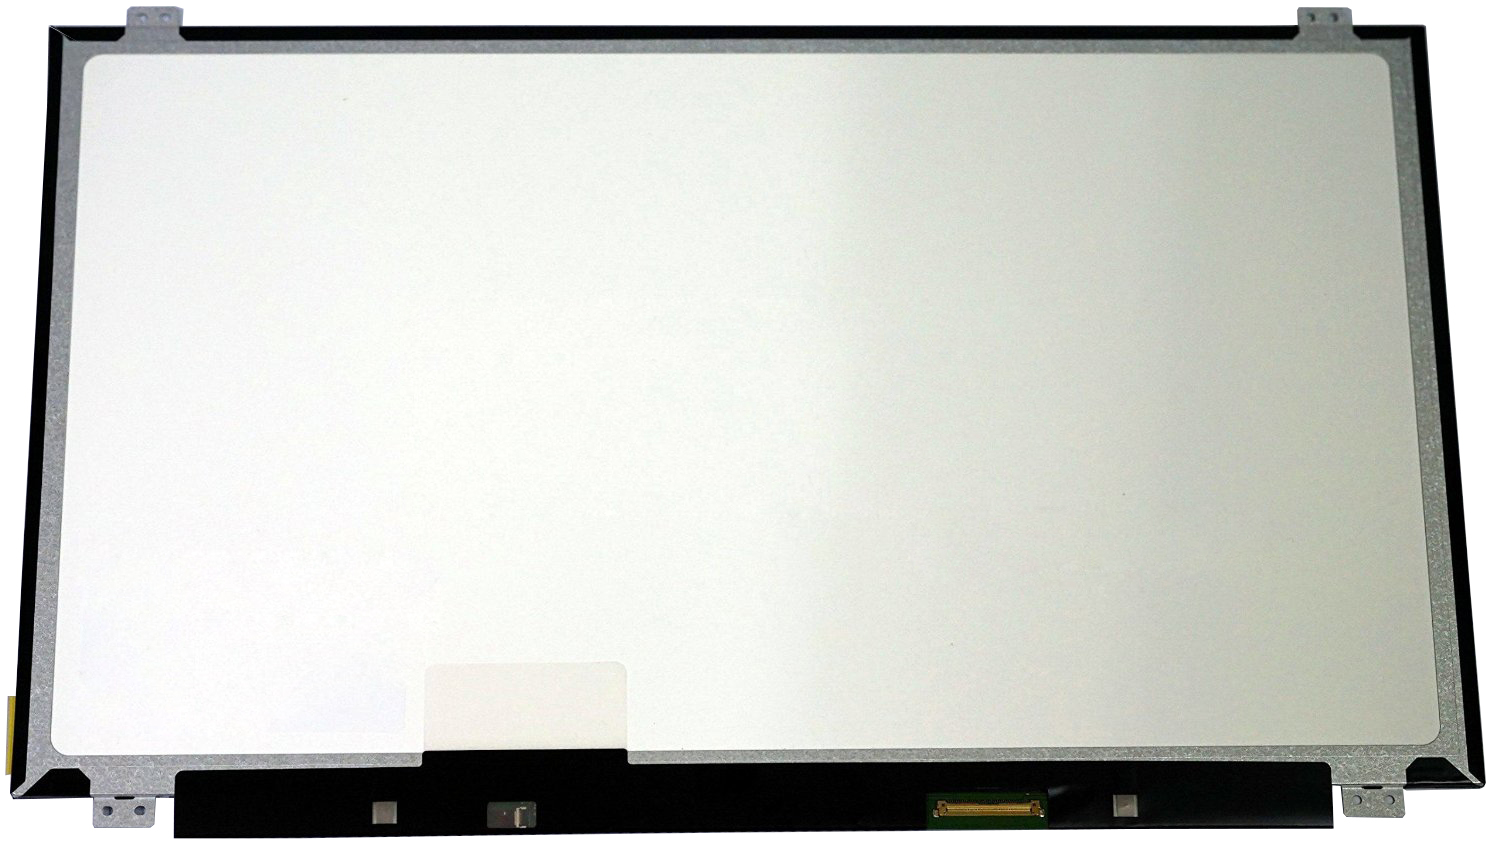 QuYing Laptop LCD Screen for Dell ALIENWARE 14 (14.0 inch 1366x768 30pin N) for dell e4310 e4300 lcd screen lp133wh1 tpd1 ltn133at17 laptop lcd screen 30pin